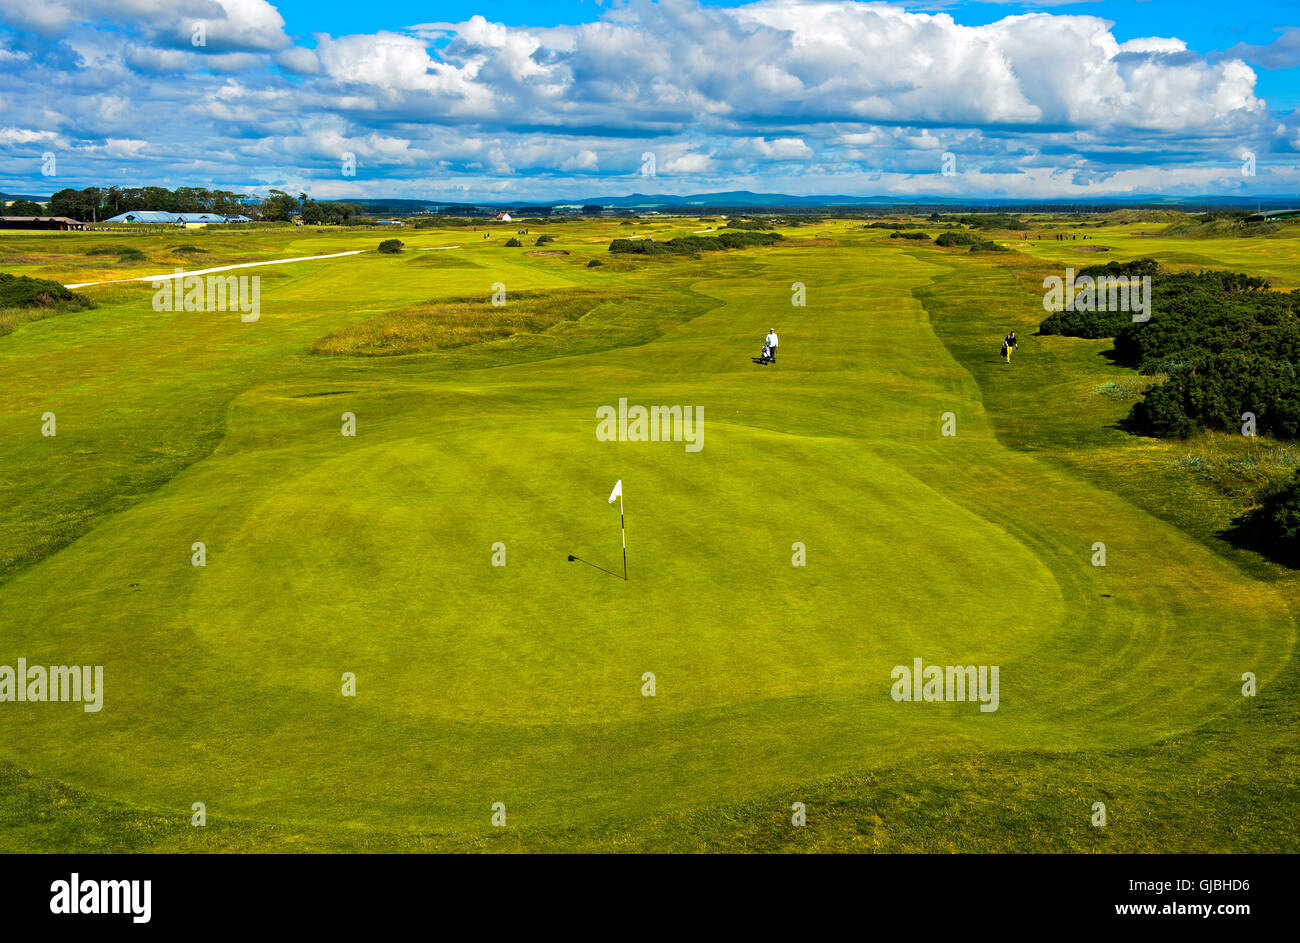 Putting green with flagstick on a golf course, Golf course St Andrews Links, St Andrews, Fife, Scotland, Great Britain - Stock Image